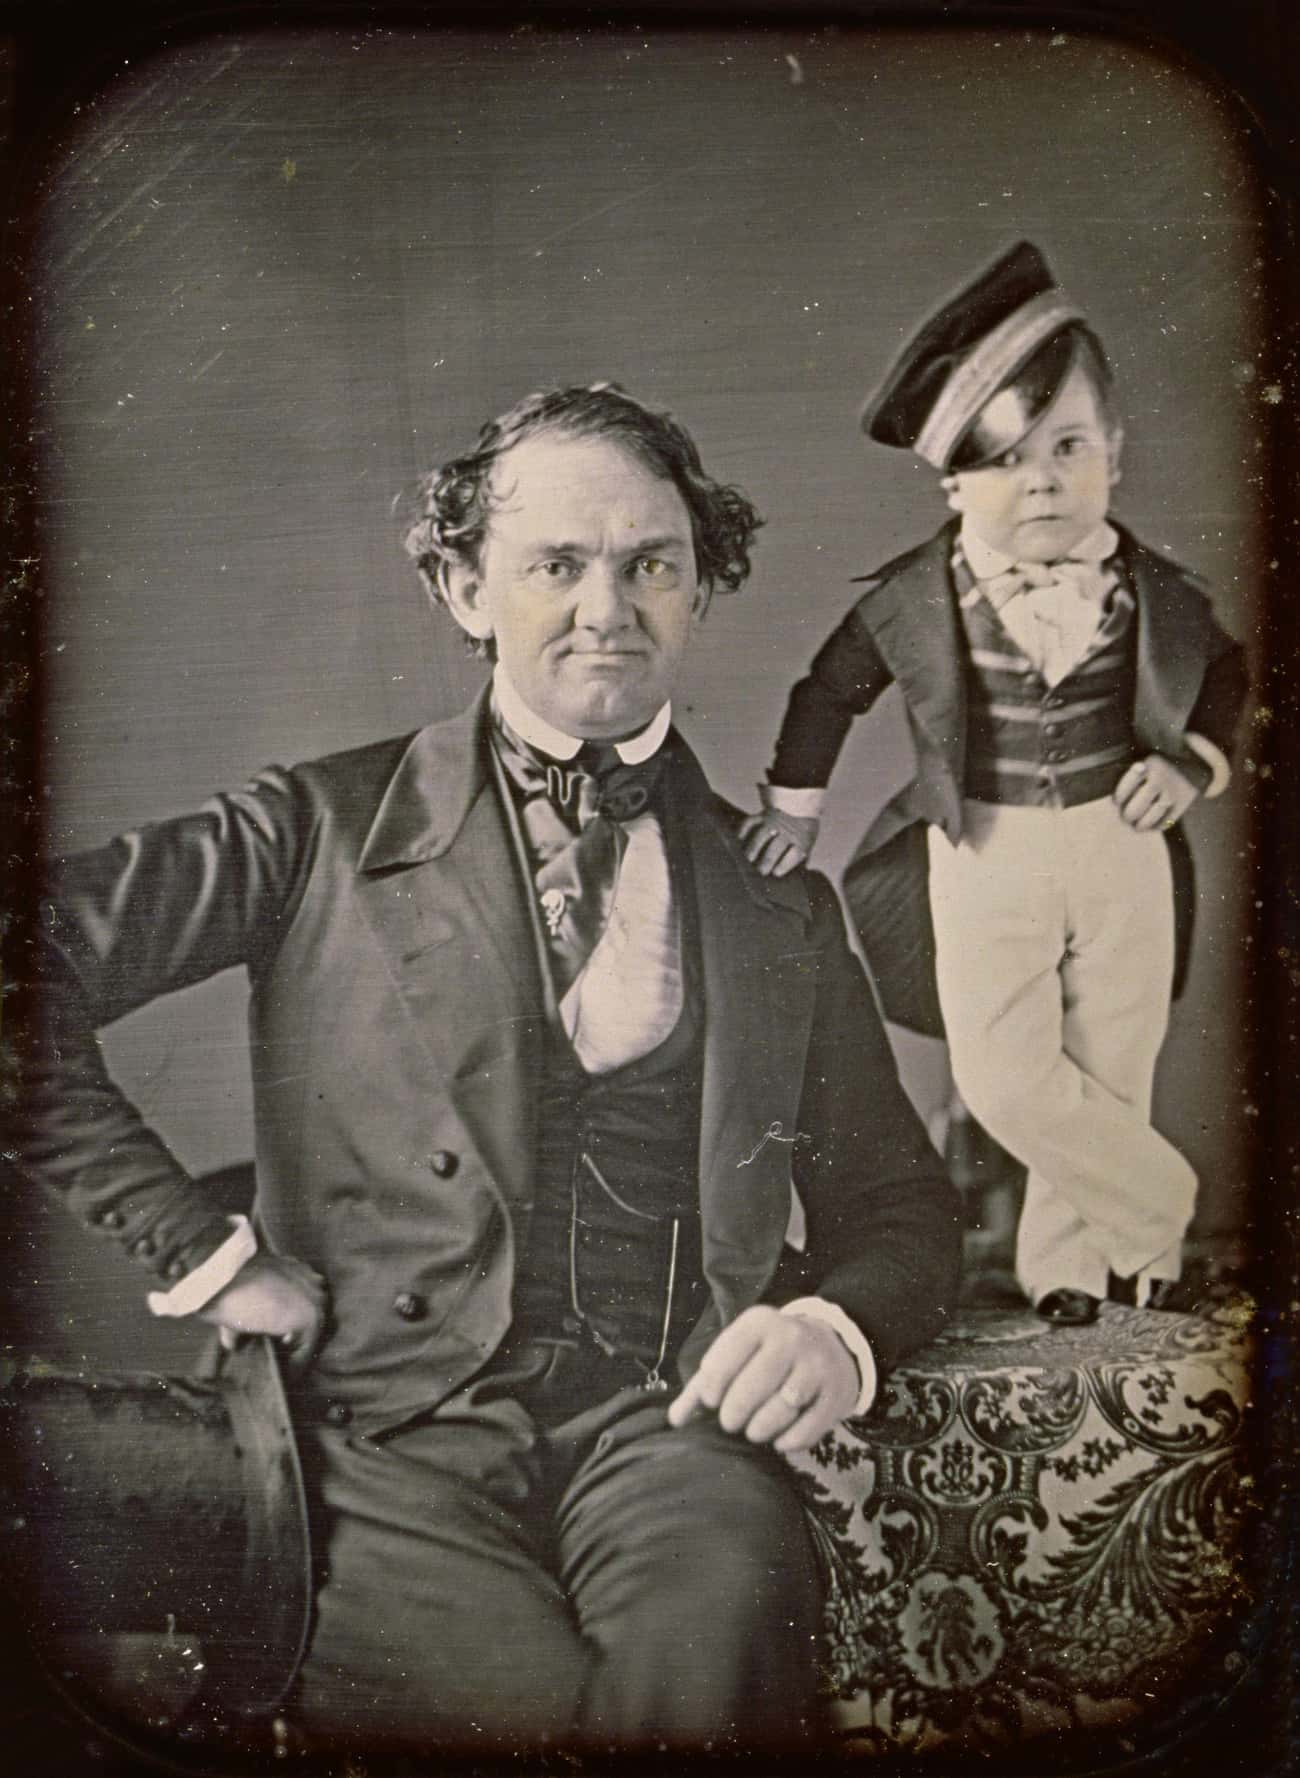 He Was Discovered By Distant Relative P.T. Barnum